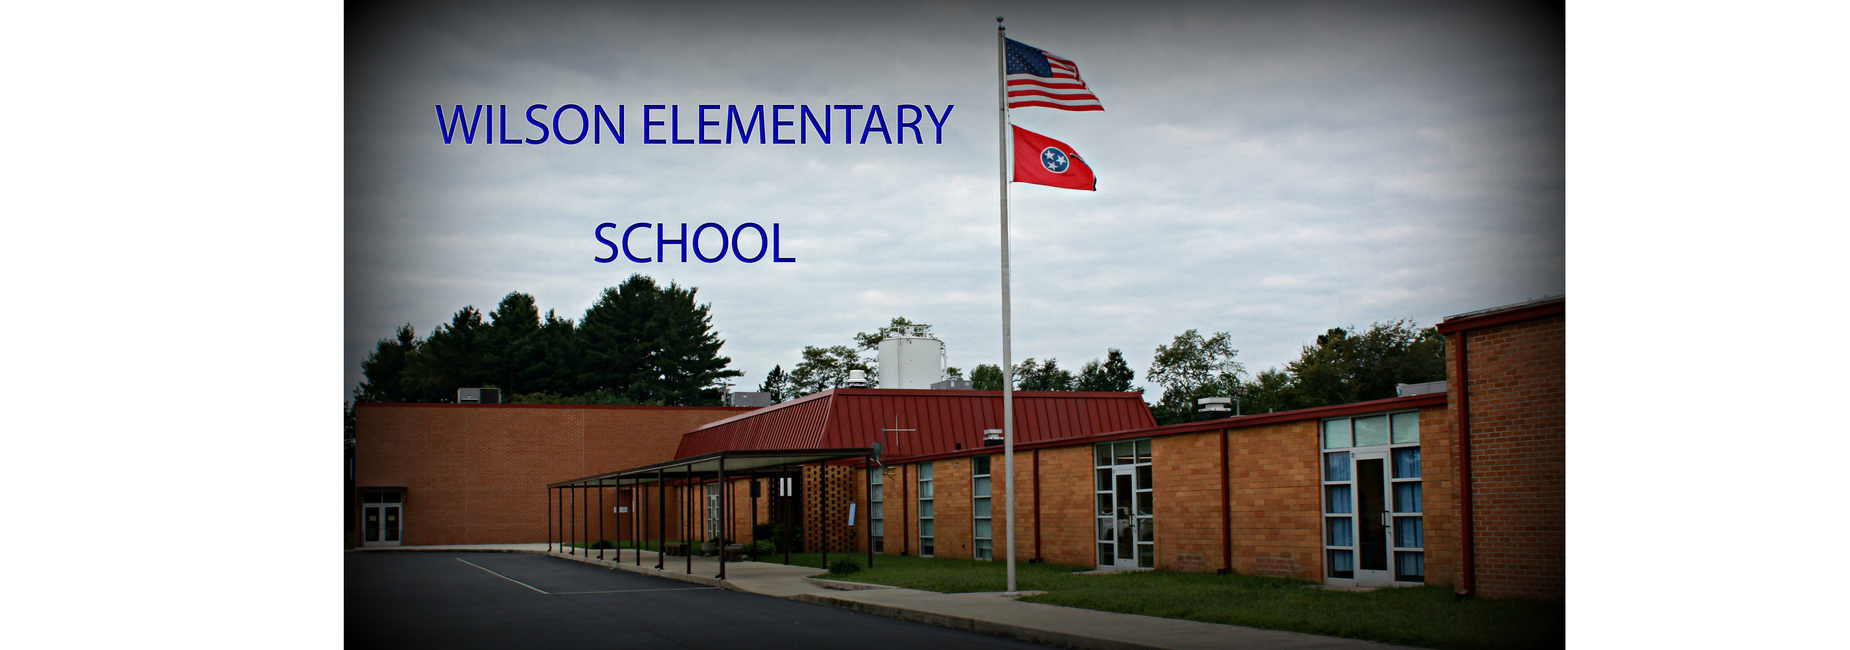 image of the front of Wlson Elementary School